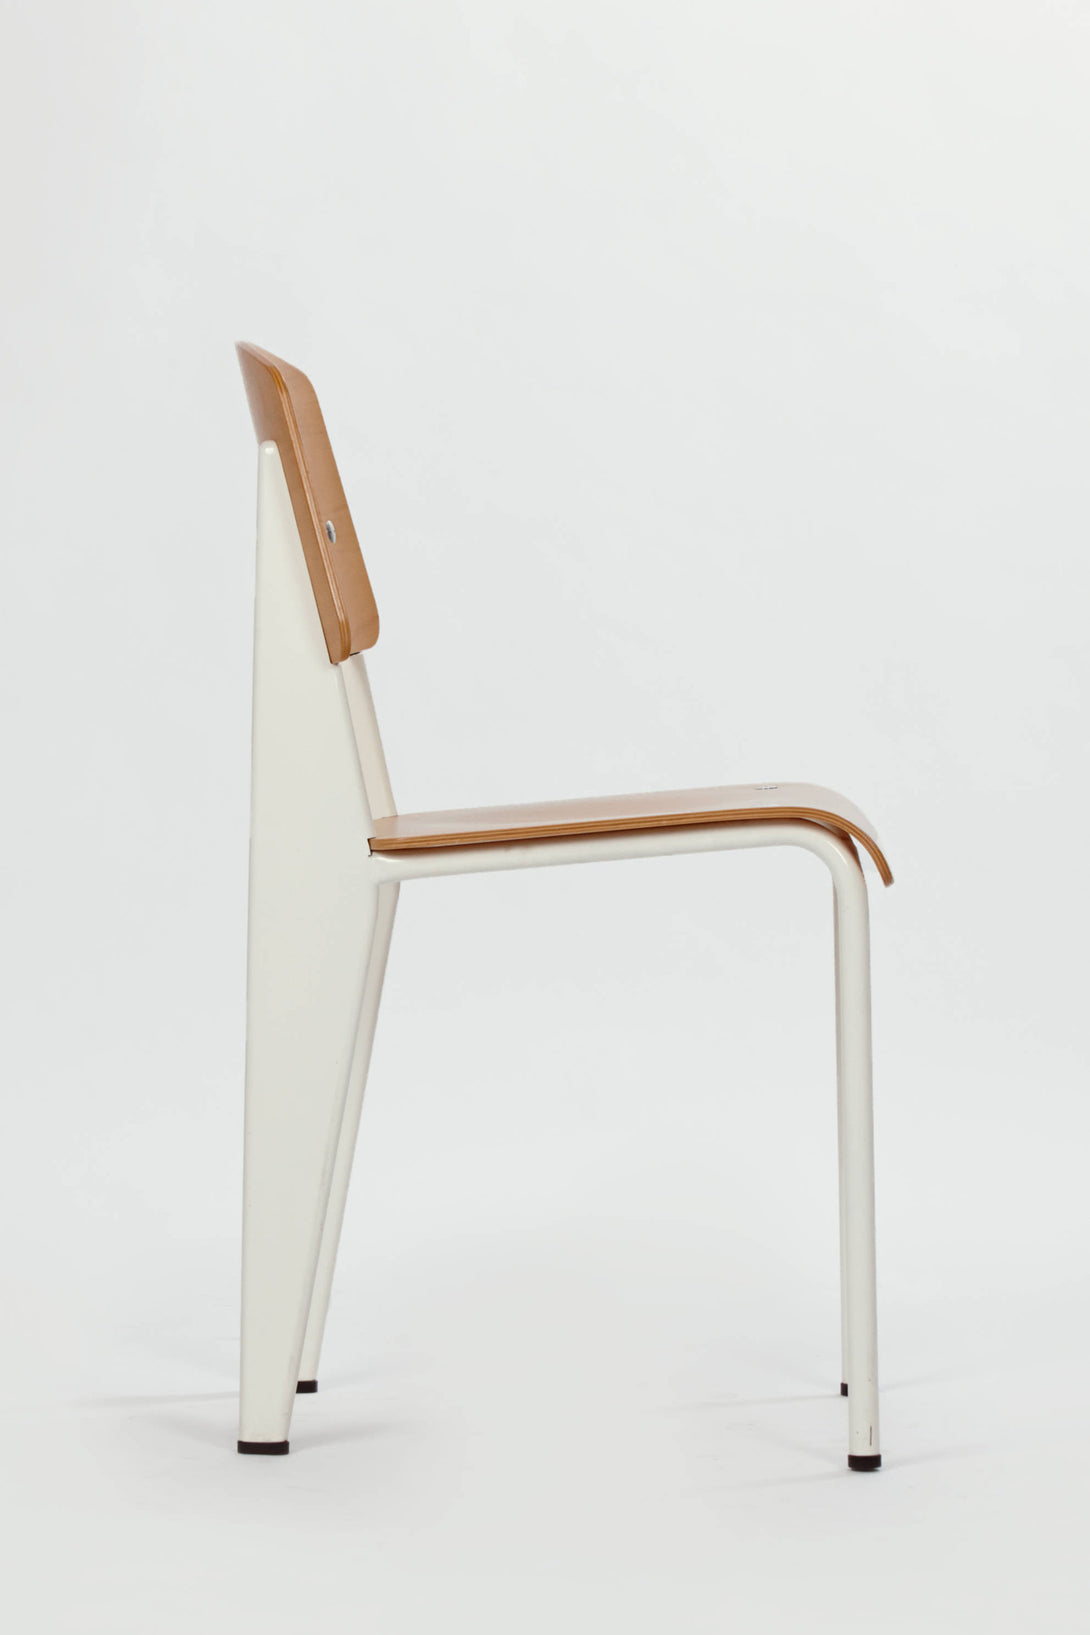 Standard Chair, Design By Jean Prouve, Vitra   2002 Edition